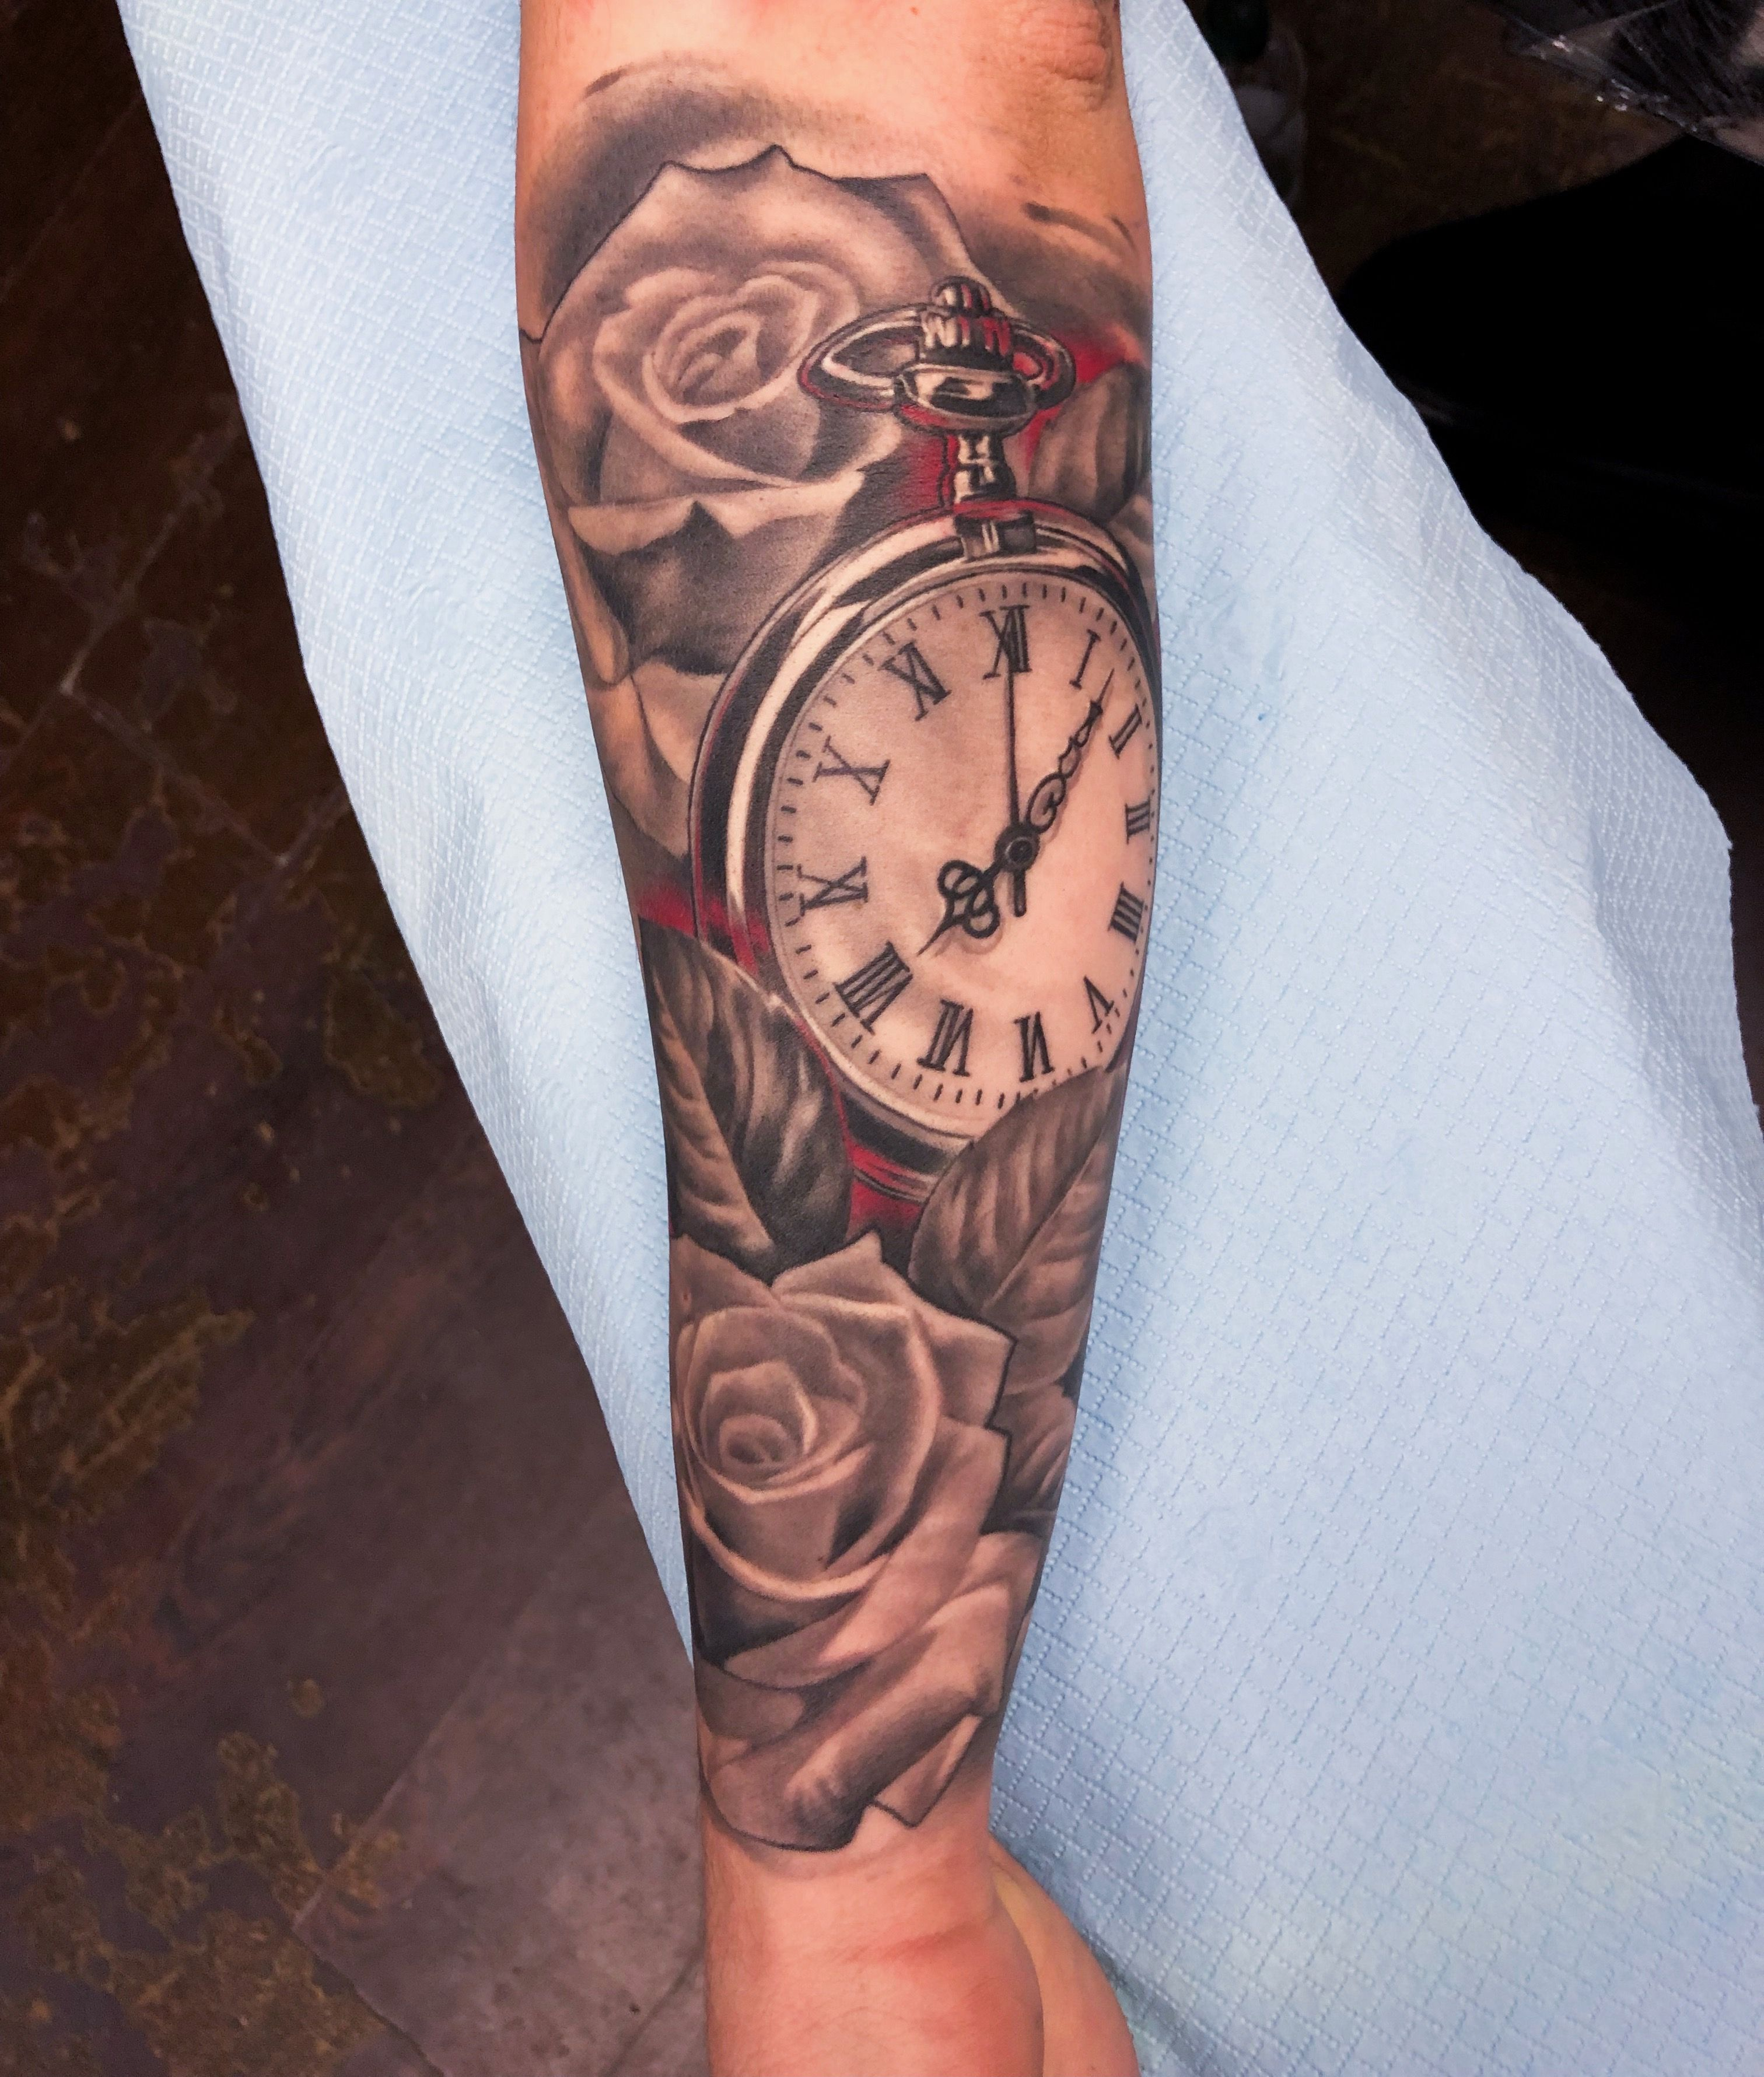 Clock And Roses Tattoo By Nino Dinchev Half Sleeve Clock Tattoo Sleeve Tattoos For Kids Clock Tattoo